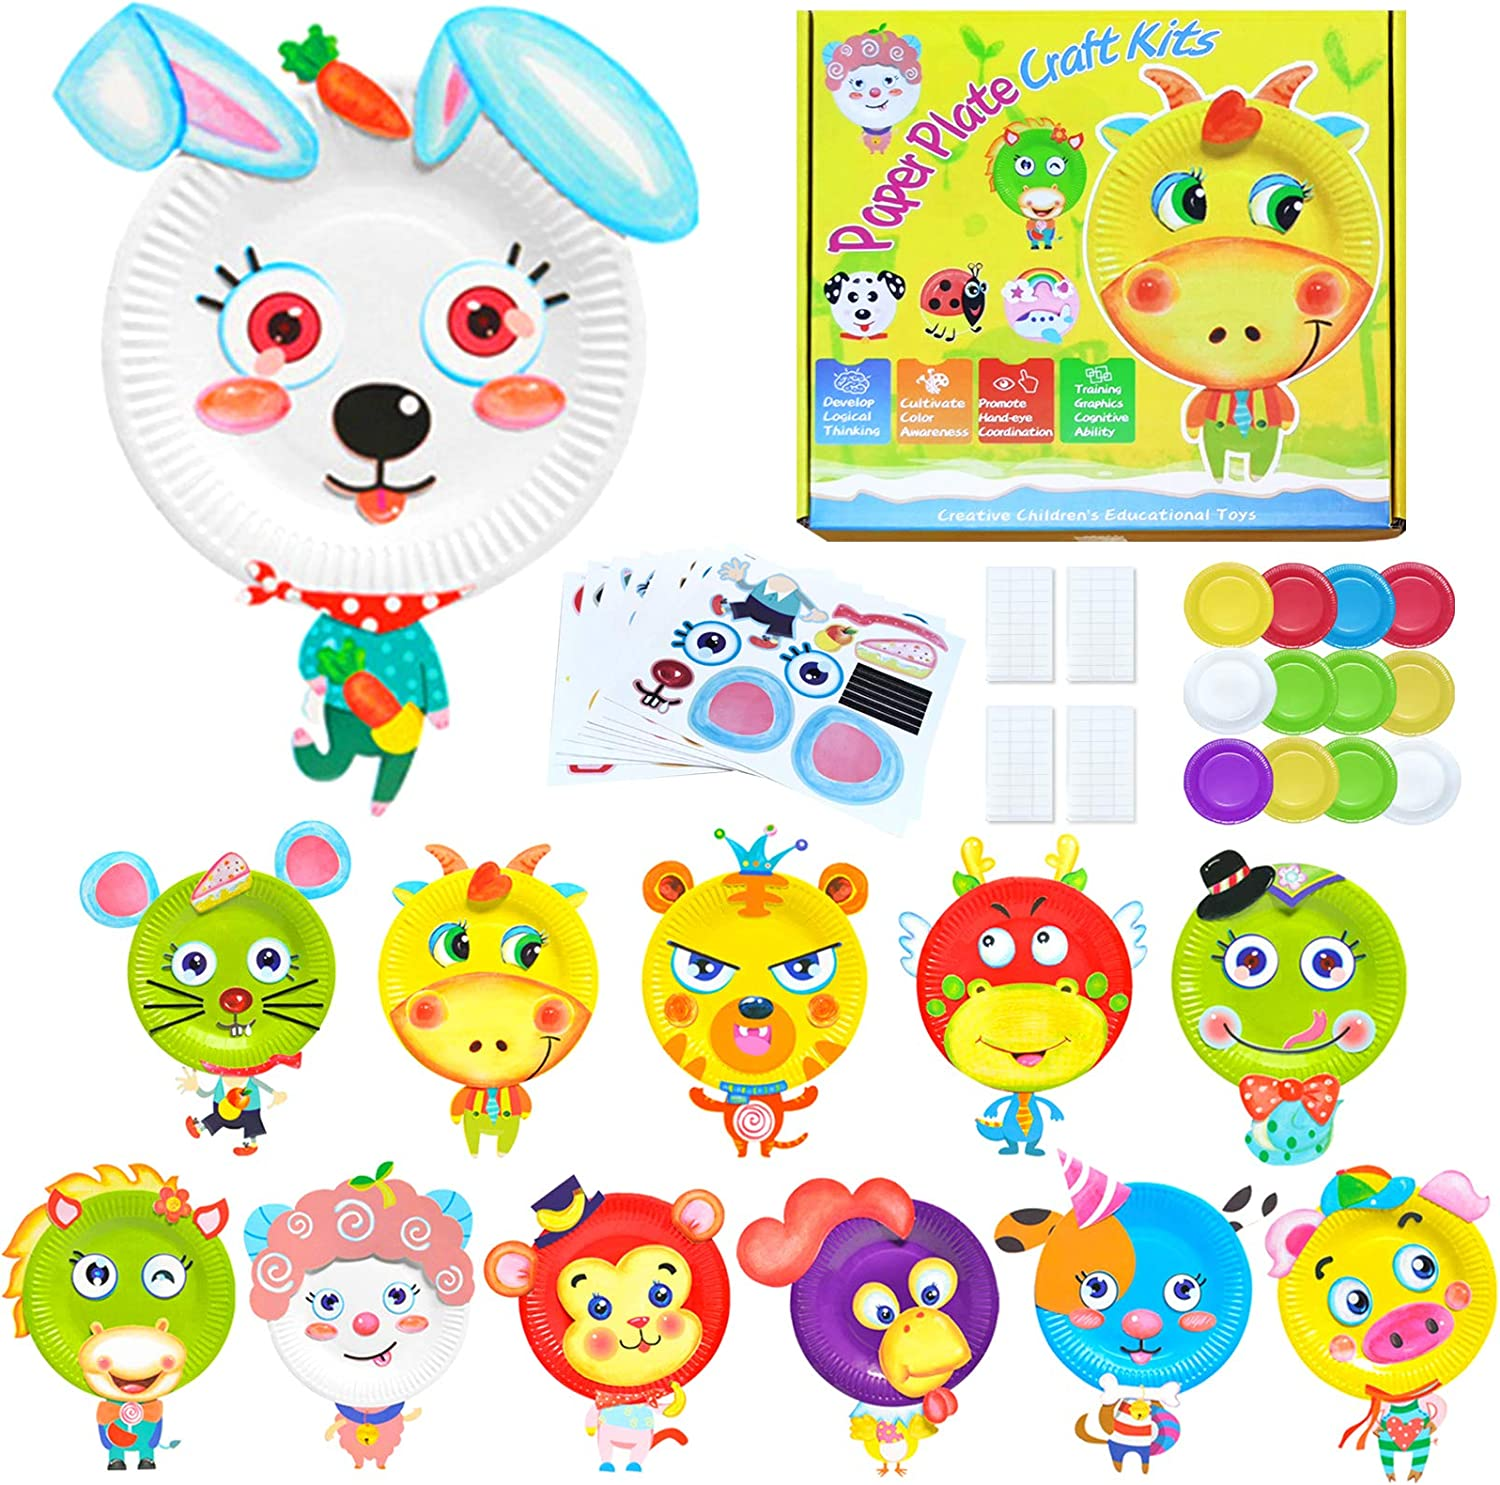 SAYBZ 12 Sets of Easter Decorating Foam Kids Craft Kits Toddler Art Toys Easter Animal Craft Kit for Kids DIY Classroom Home School Art Decor Animals Paper Plate Art Kit Crafts for Kids and Fun Home